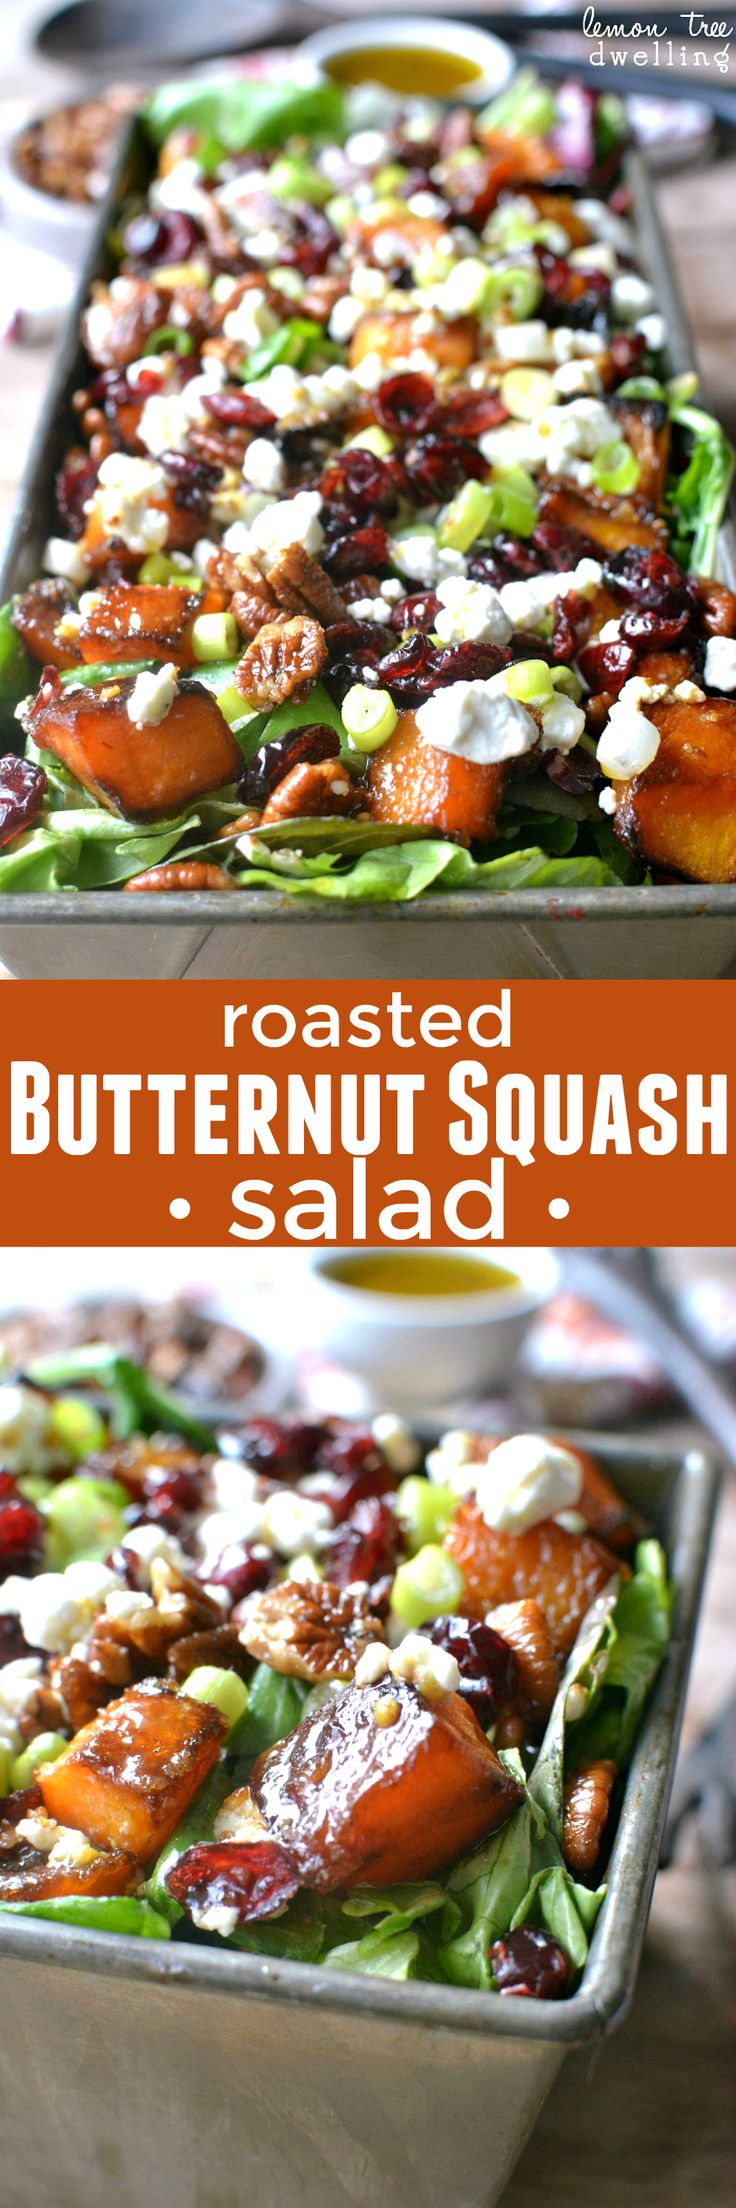 Mixed greens topped with roasted butternut squash, pecans, dried cranberries, goat cheese, and maple mustard vinaigrette. The BEST Thanksgiving salad!!